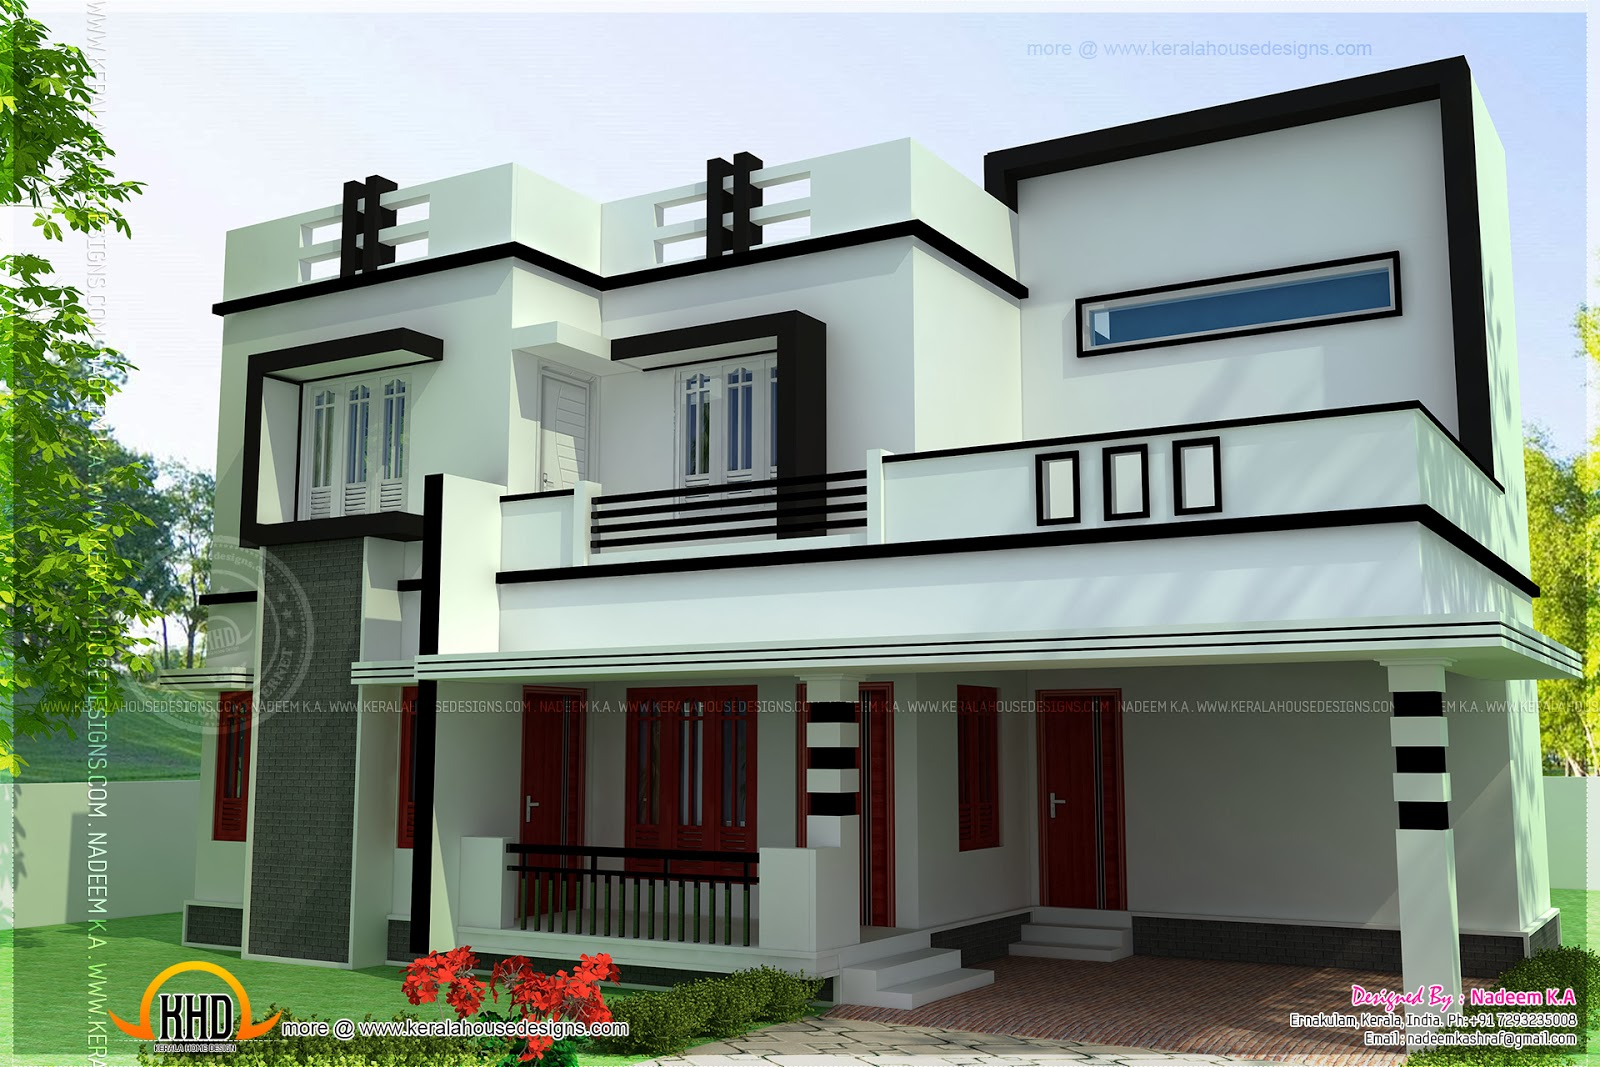 Flat roof 4 bedroom modern house kerala home design and Contemporary flat roof designs